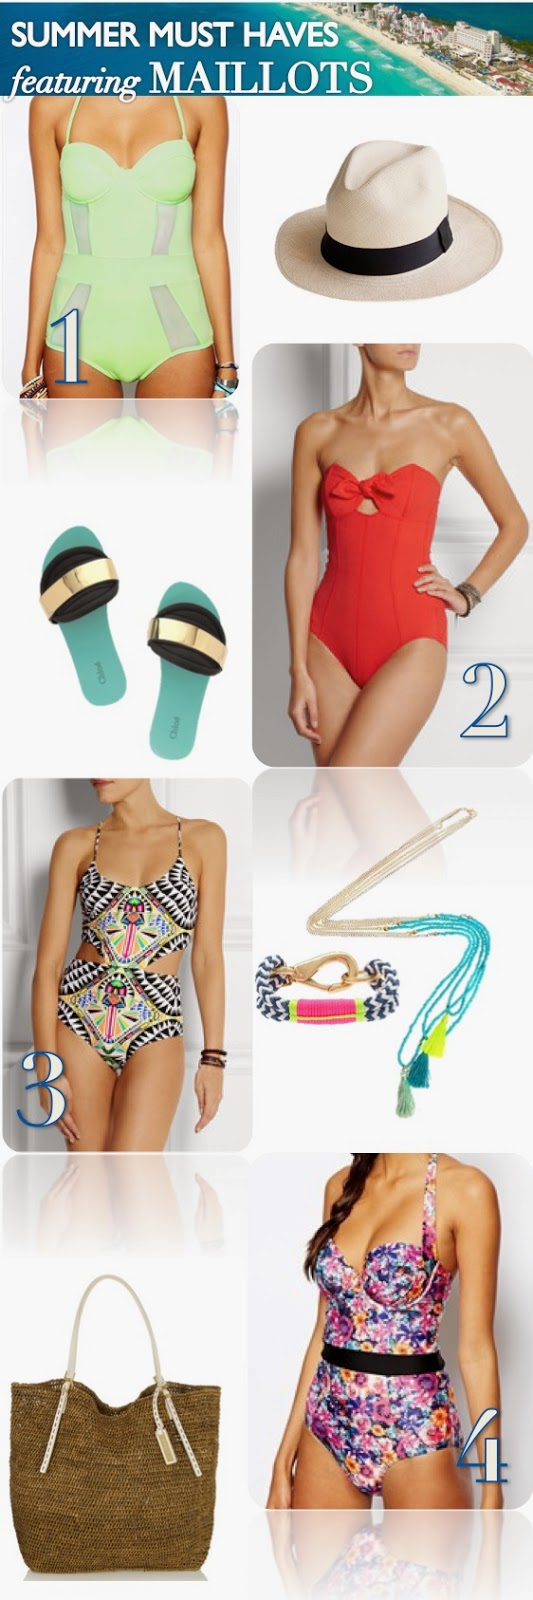 thewellset.com's Summer Must Haves featuring the Maillot - Mara Hoffman, ASOS, J.Crew, Michael Kors, and Chloe